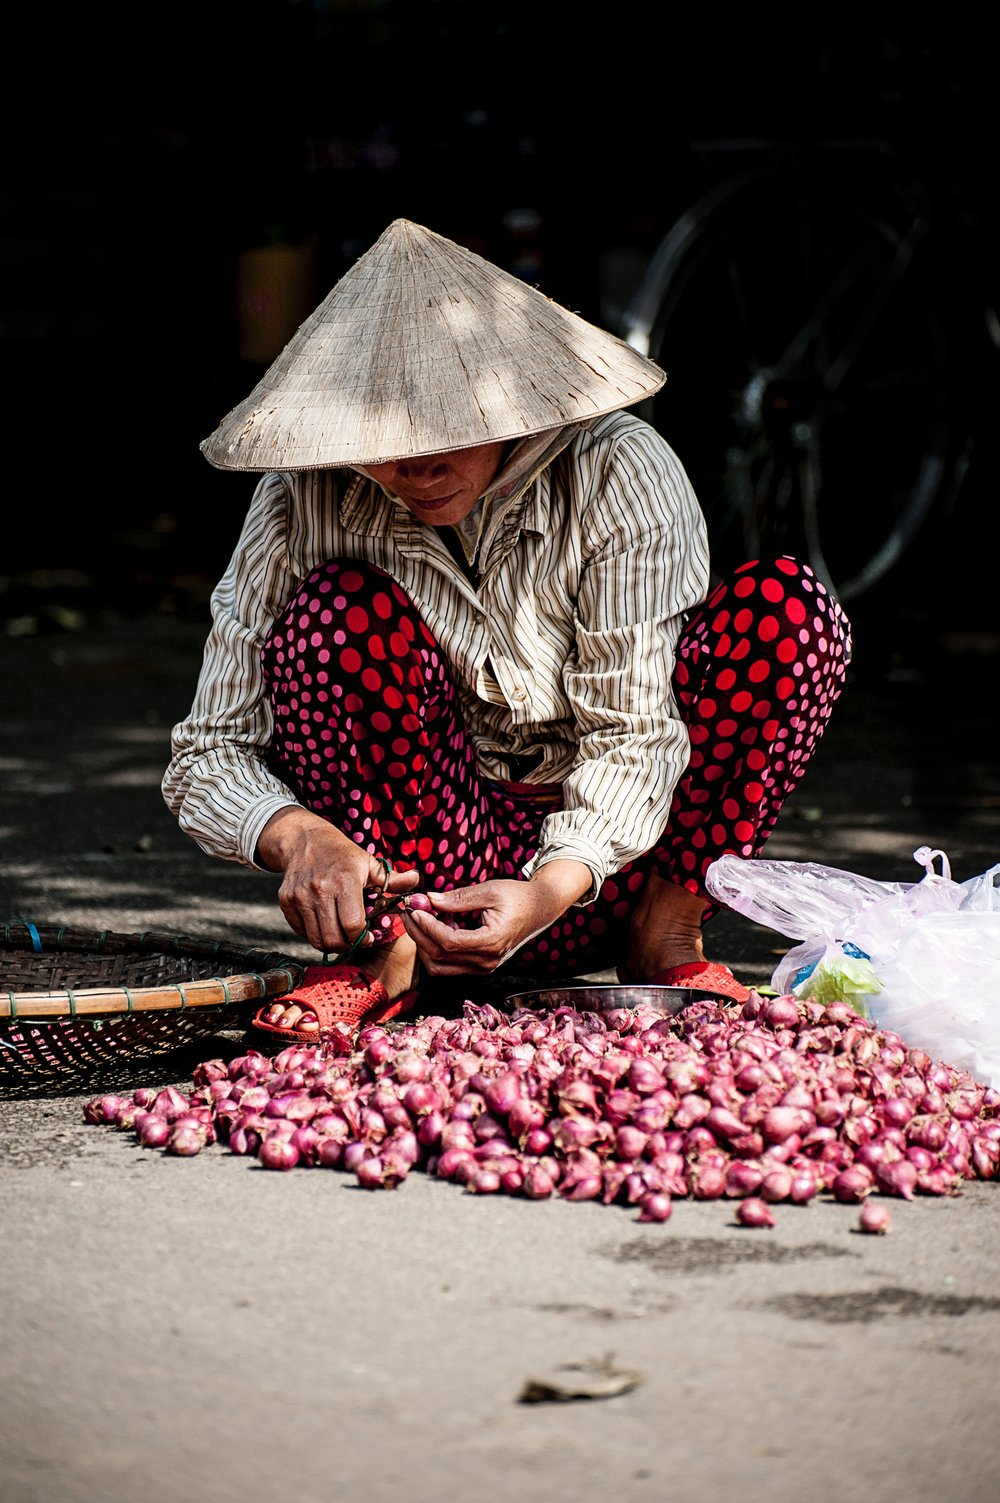 Vietnam Adventure - Travel through Vietnam, from Ho Chi Minh City to Hanoi, visiting cities, mountains, magnificent beaches and four stunning World Heritage Sites.